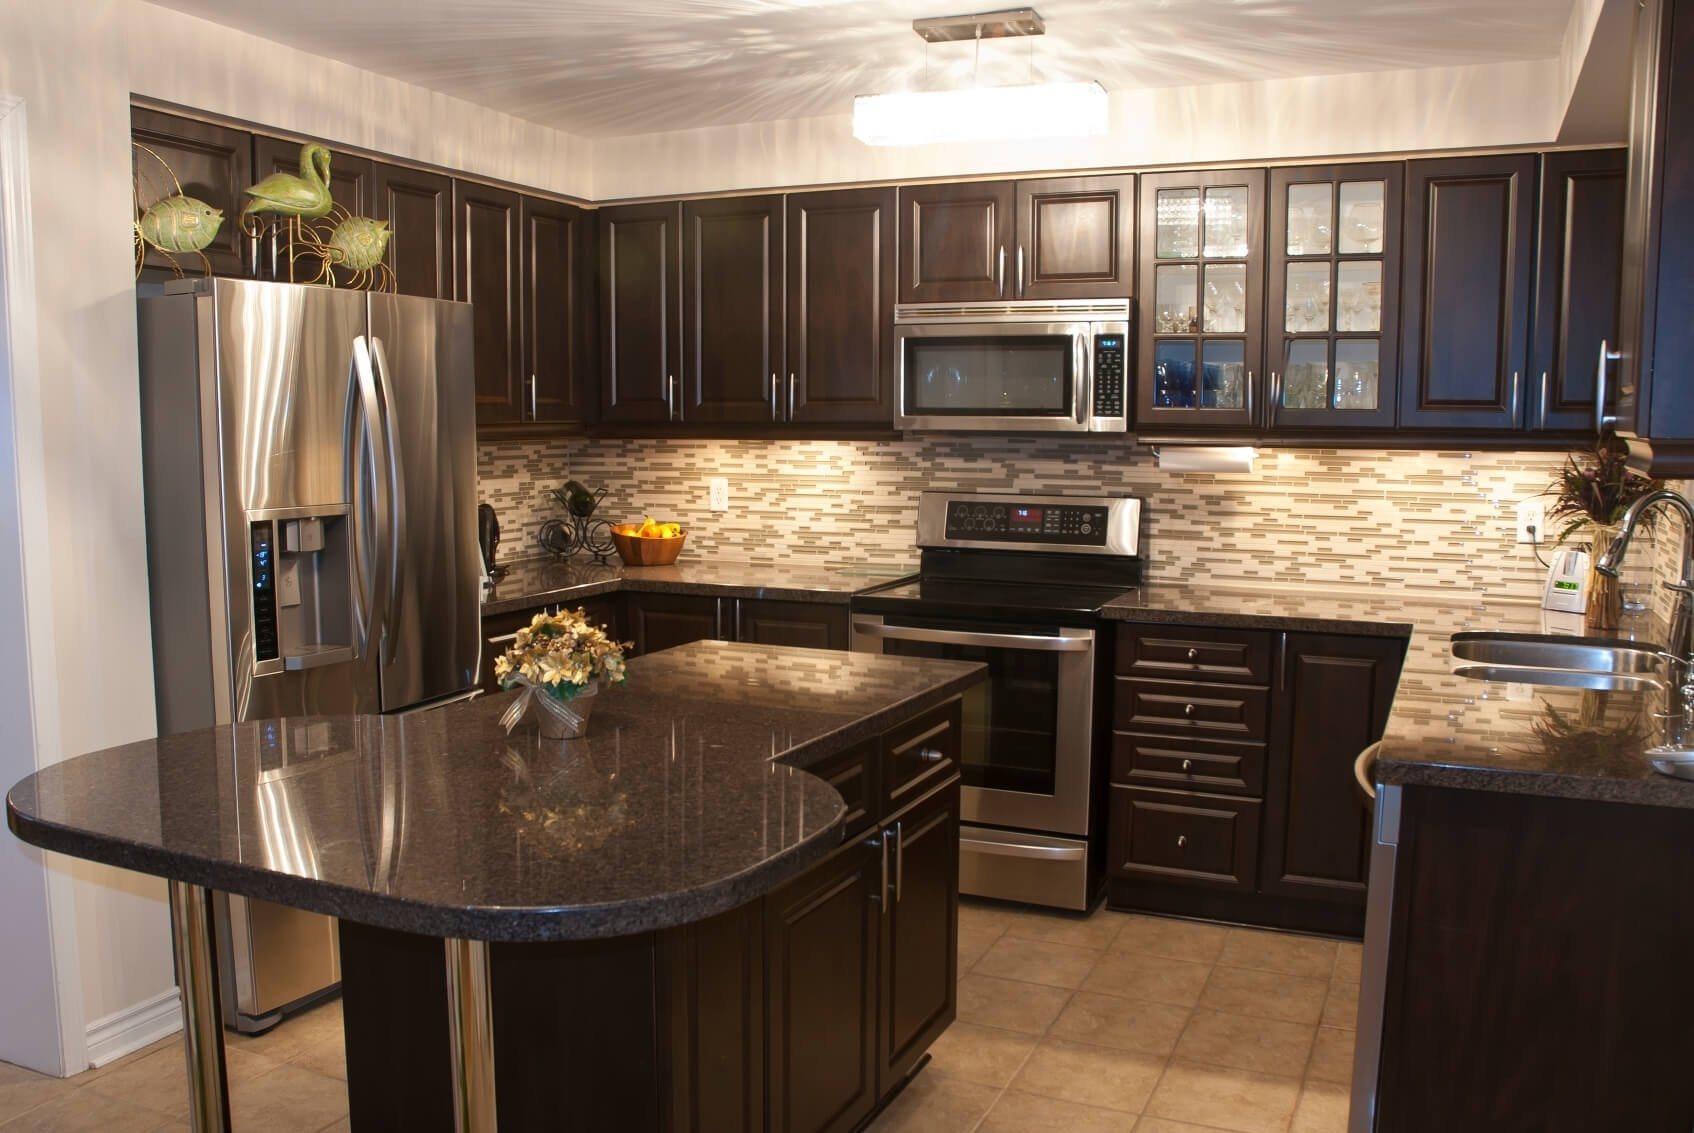 pictures of kitchen backsplashes with dark cabinets • kitchen backsplash